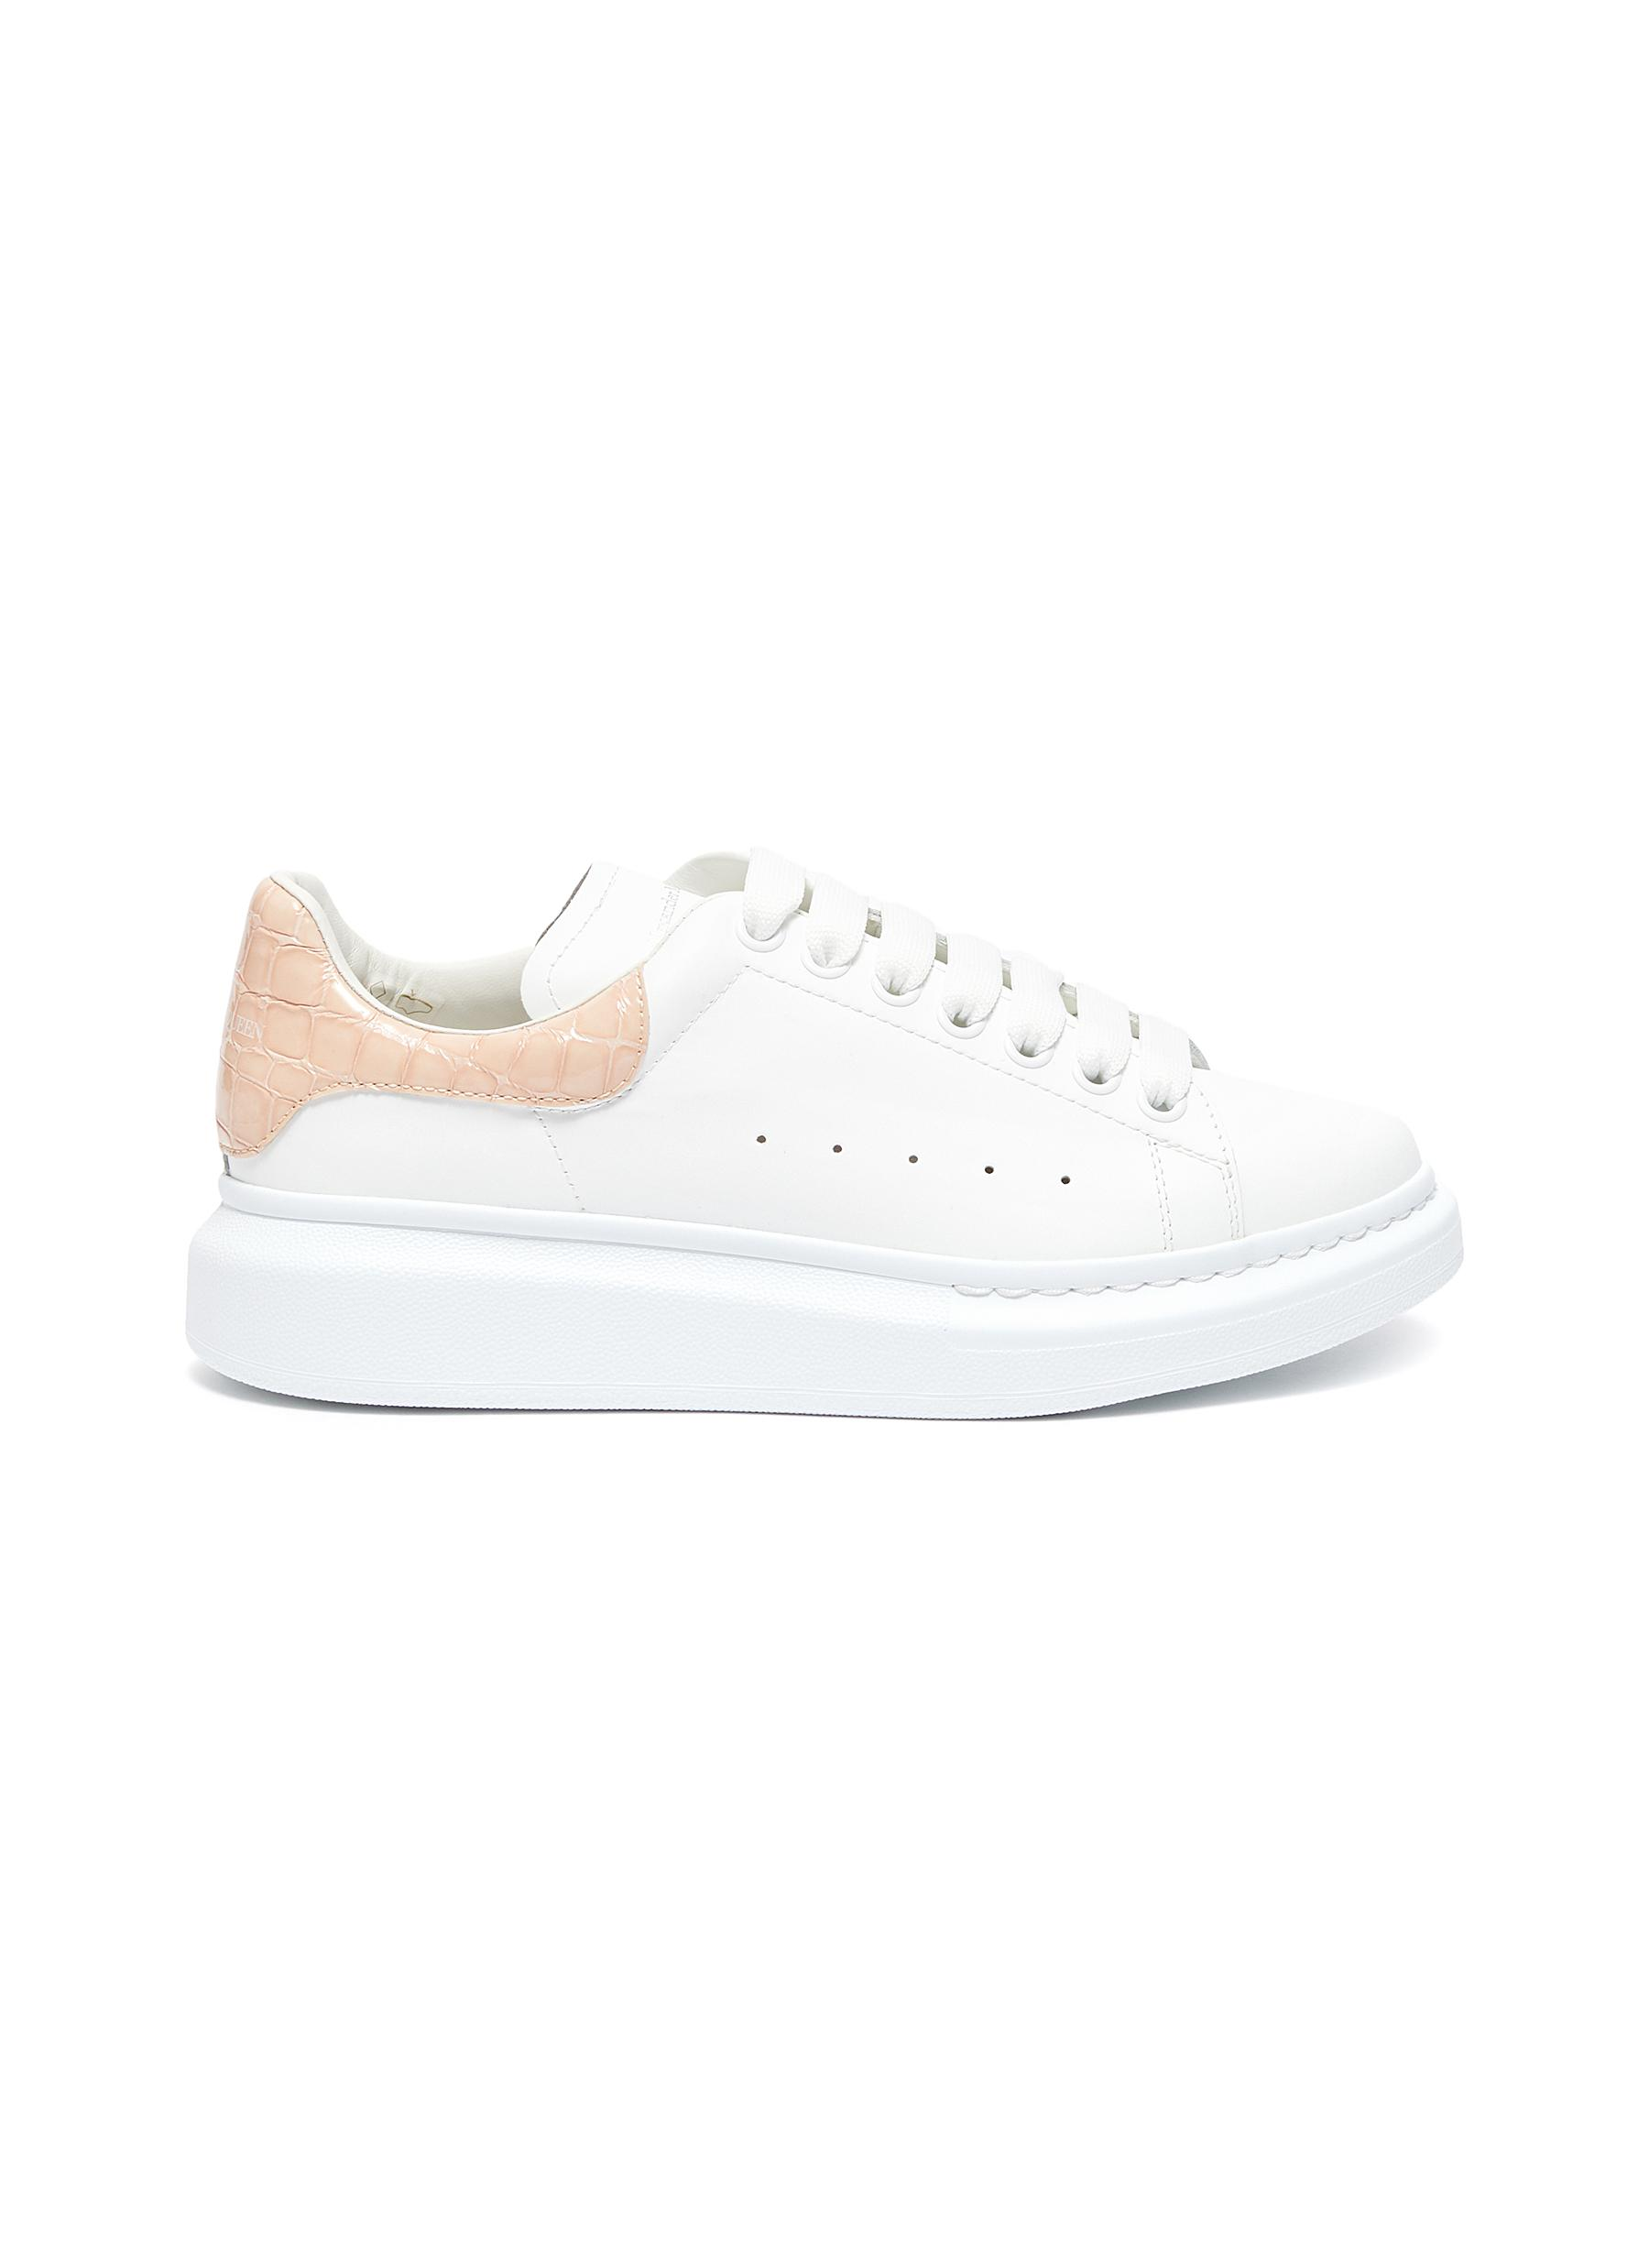 Oversized Sneakers' in Leather with Croc-embossed Heel Tab